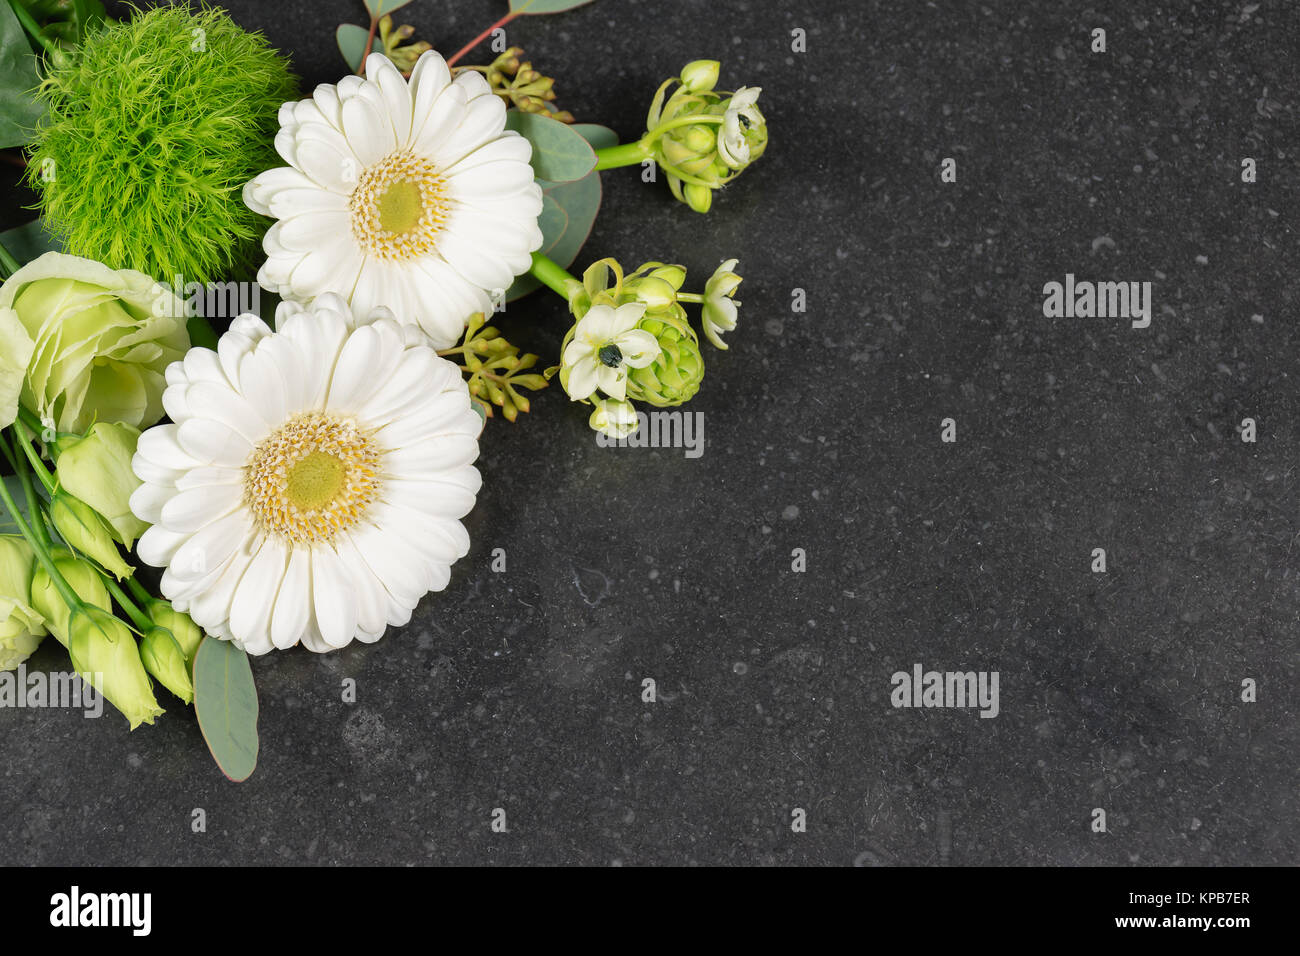 Funeral Flowers Sympathy Stock Photos & Funeral Flowers ...